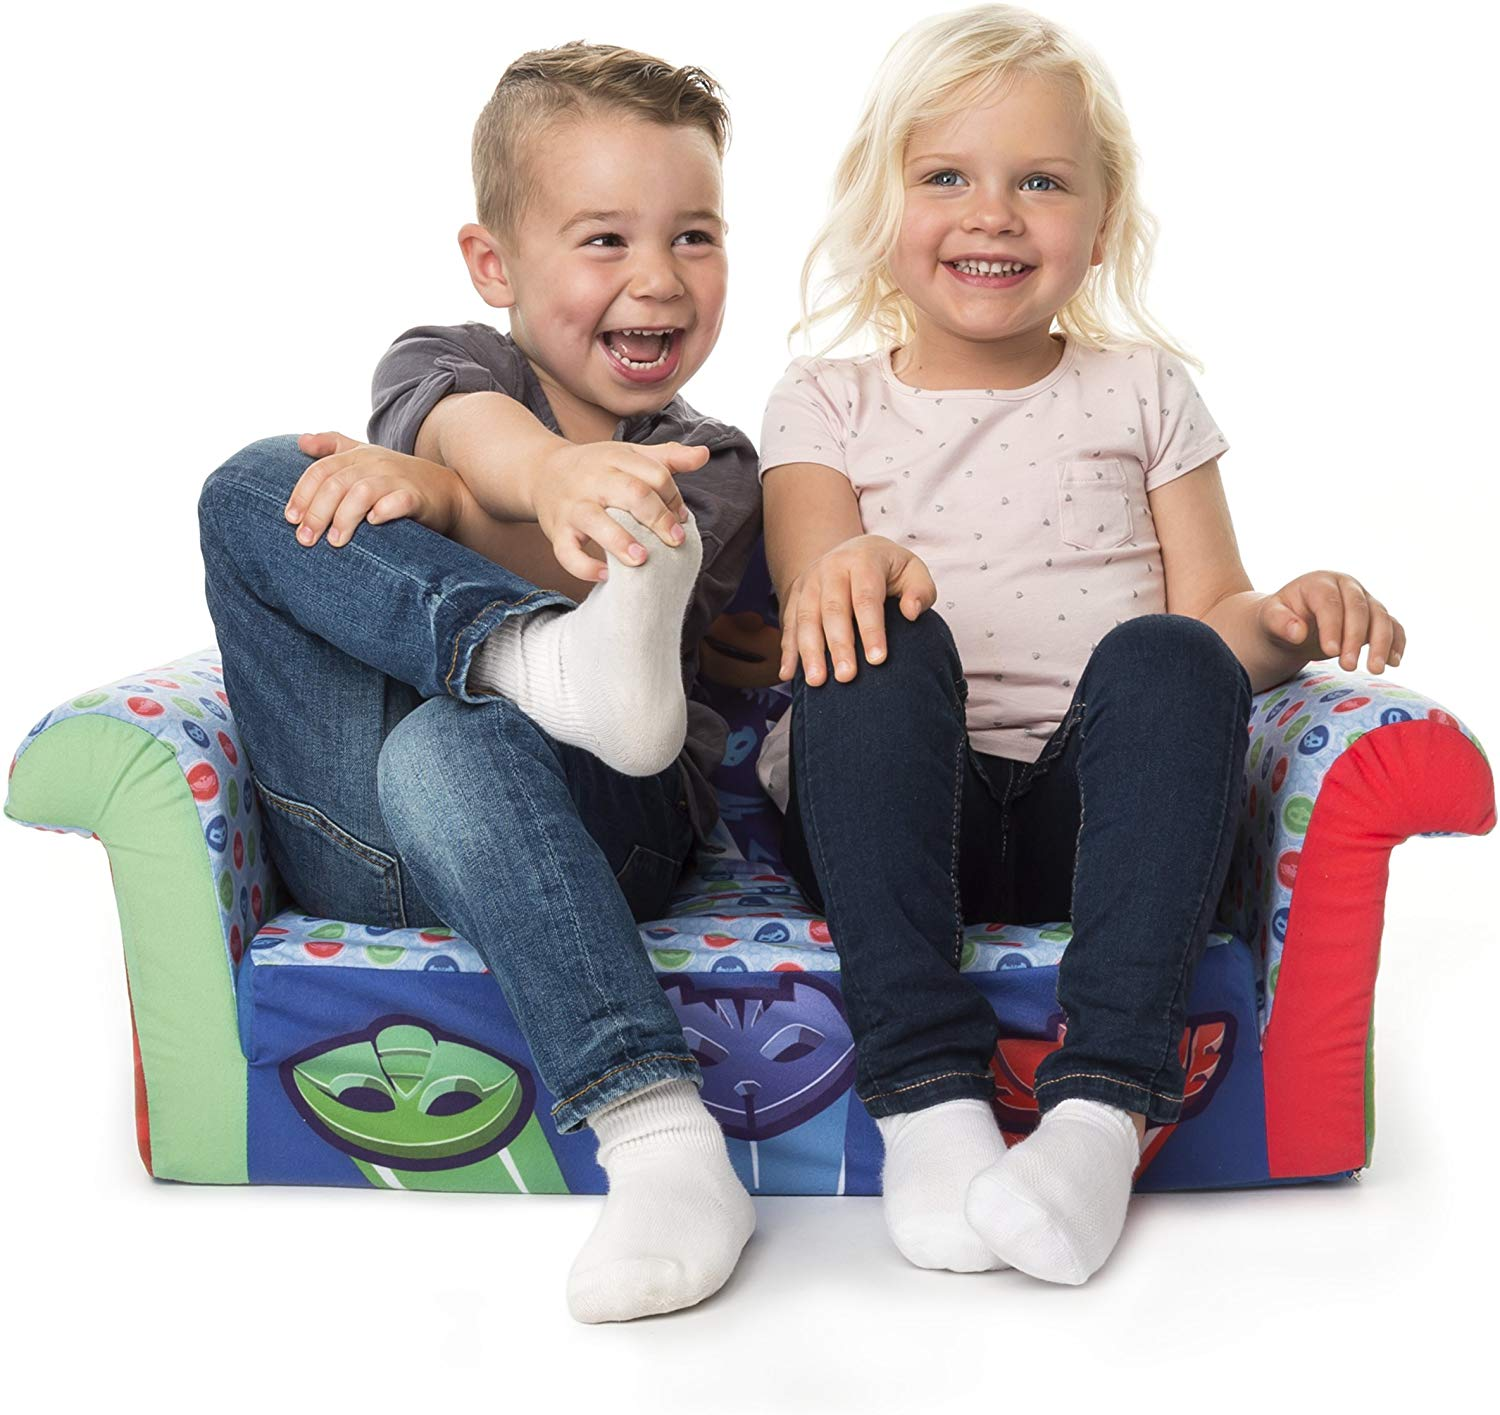 Review of Marshmallow Furniture - Children's 2 in 1 Flip Open Foam Sofa